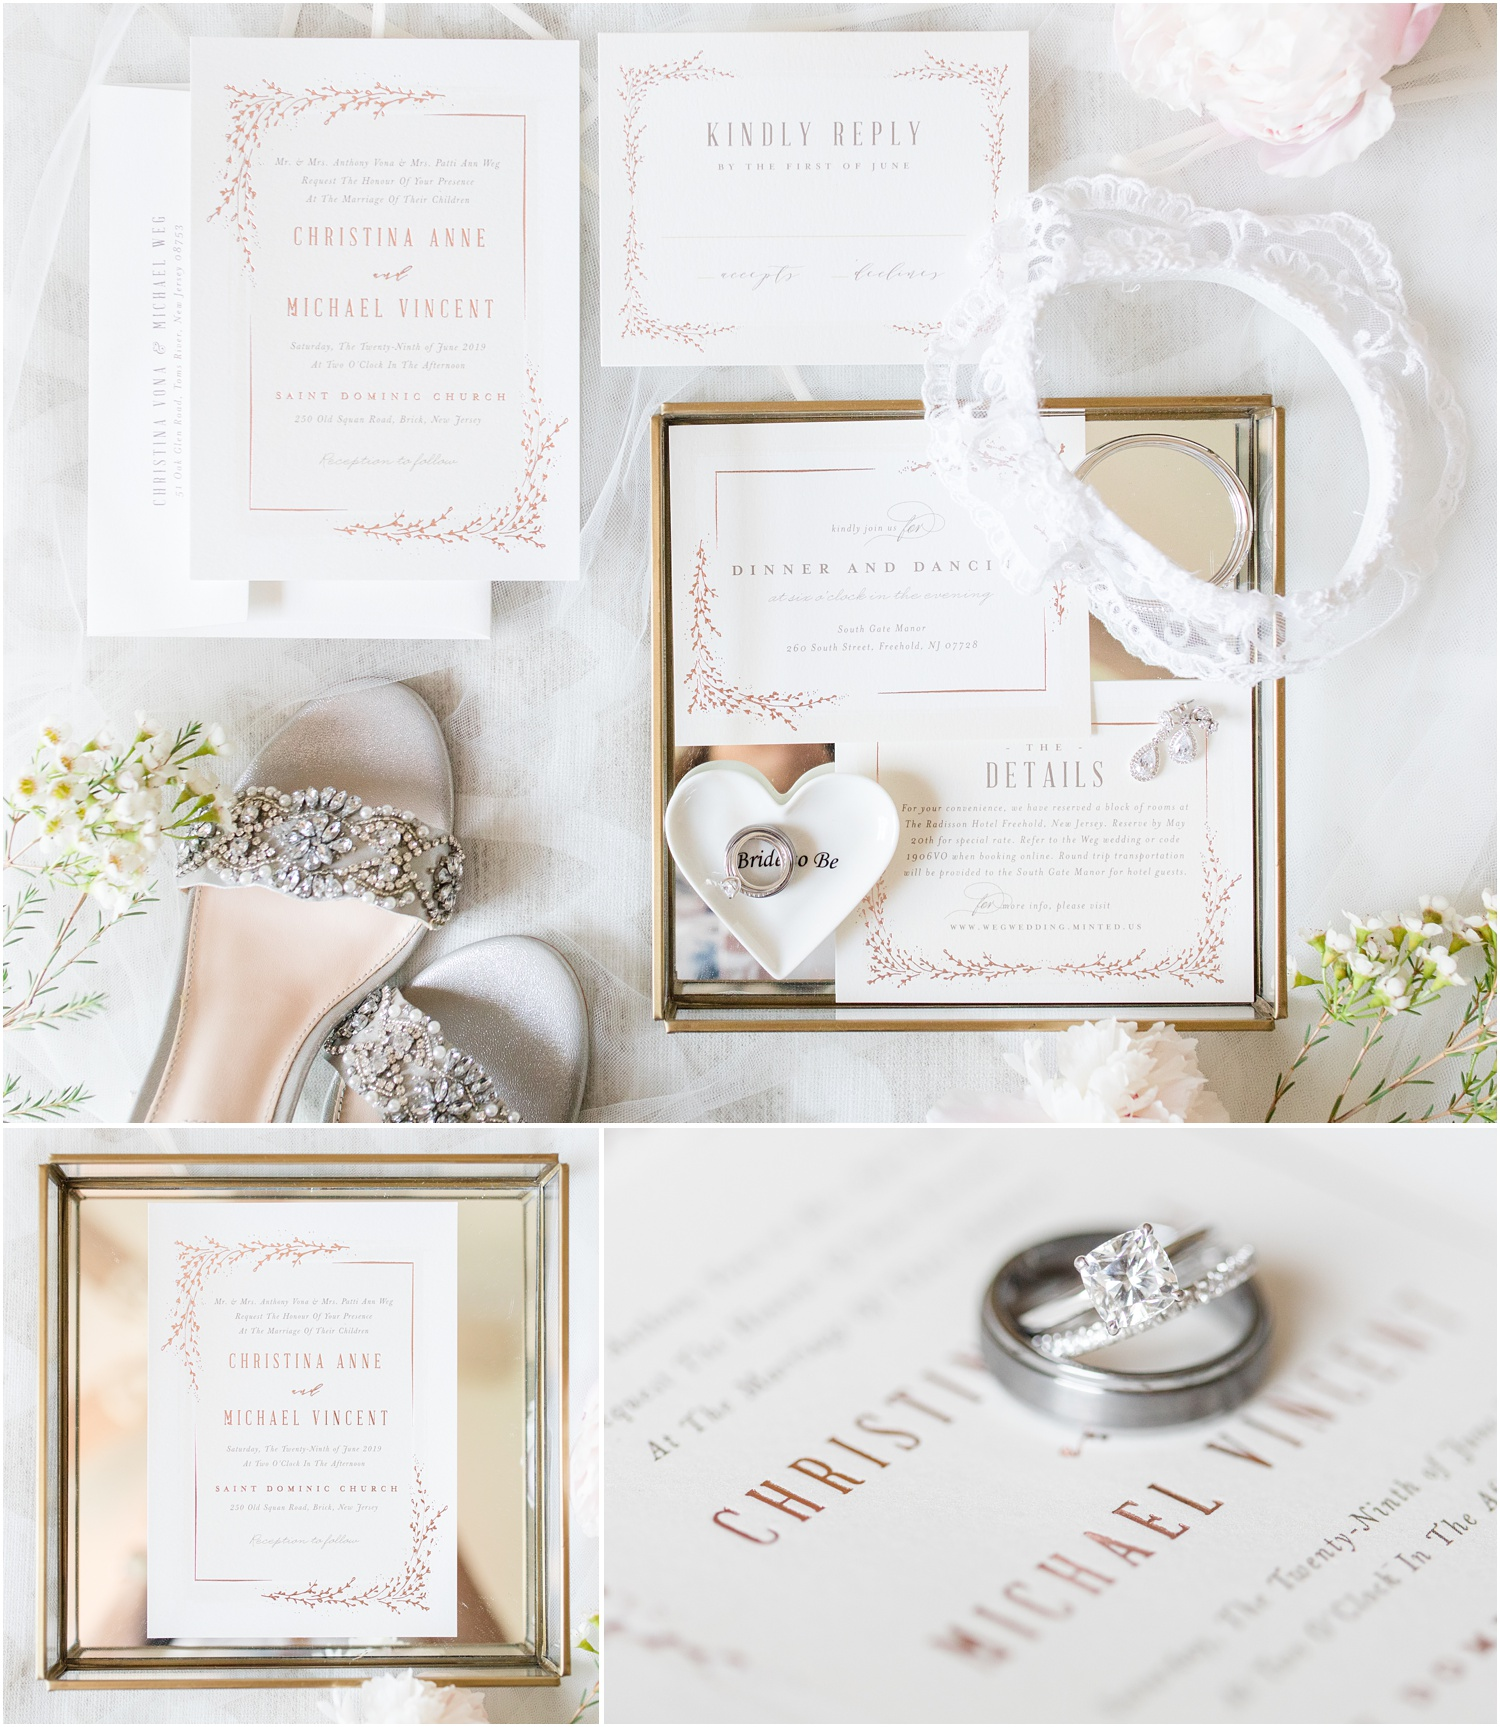 Wedding invitations and bridal accessories for South Gate Manor Wedding.